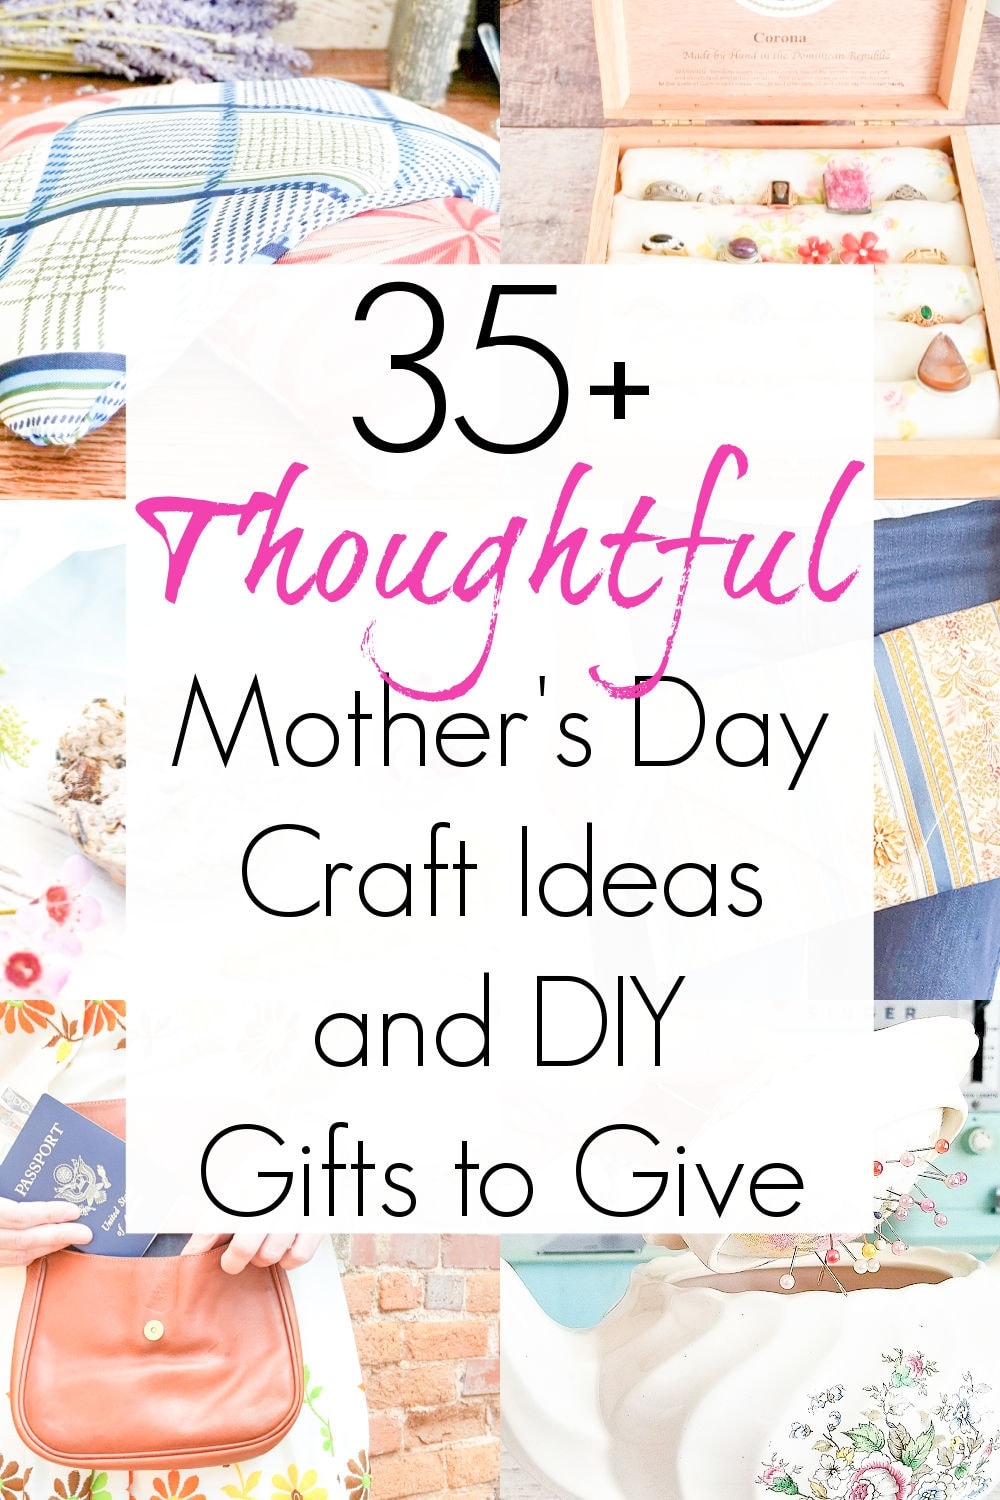 mothers day craft ideas and DIY gifts for her